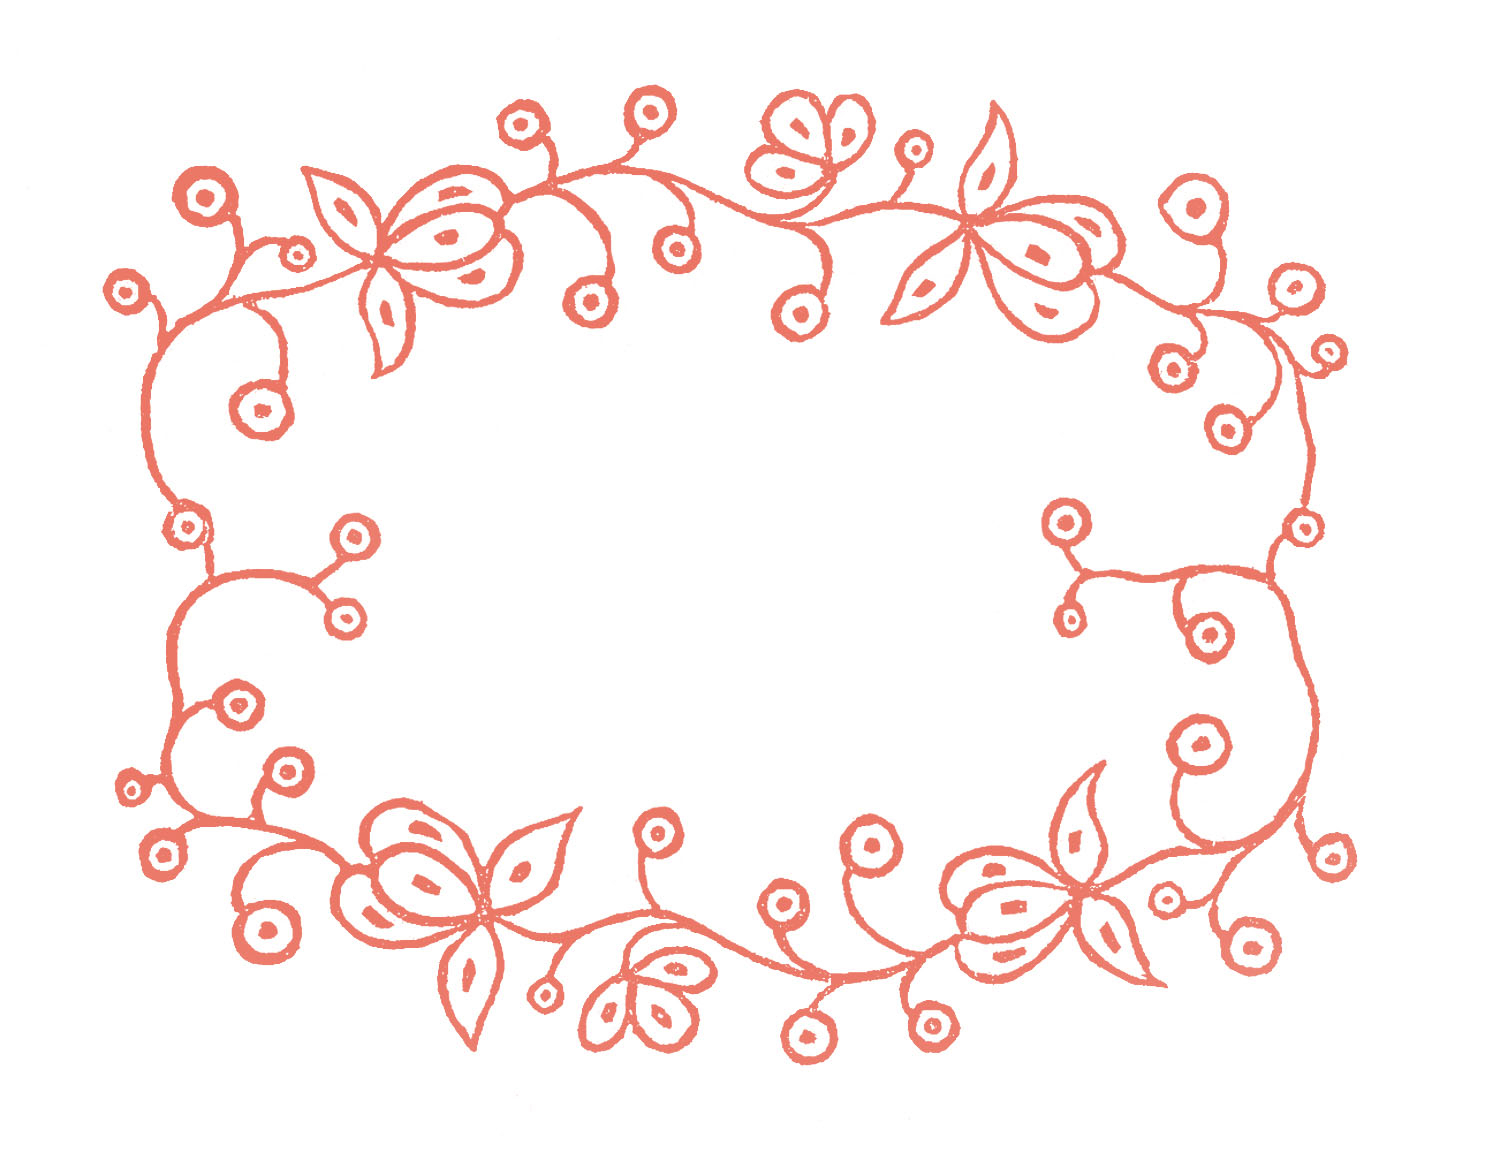 Free Flower Embroidery Patterns Royalty Free Images Embroidery Patterns Floral Frames The